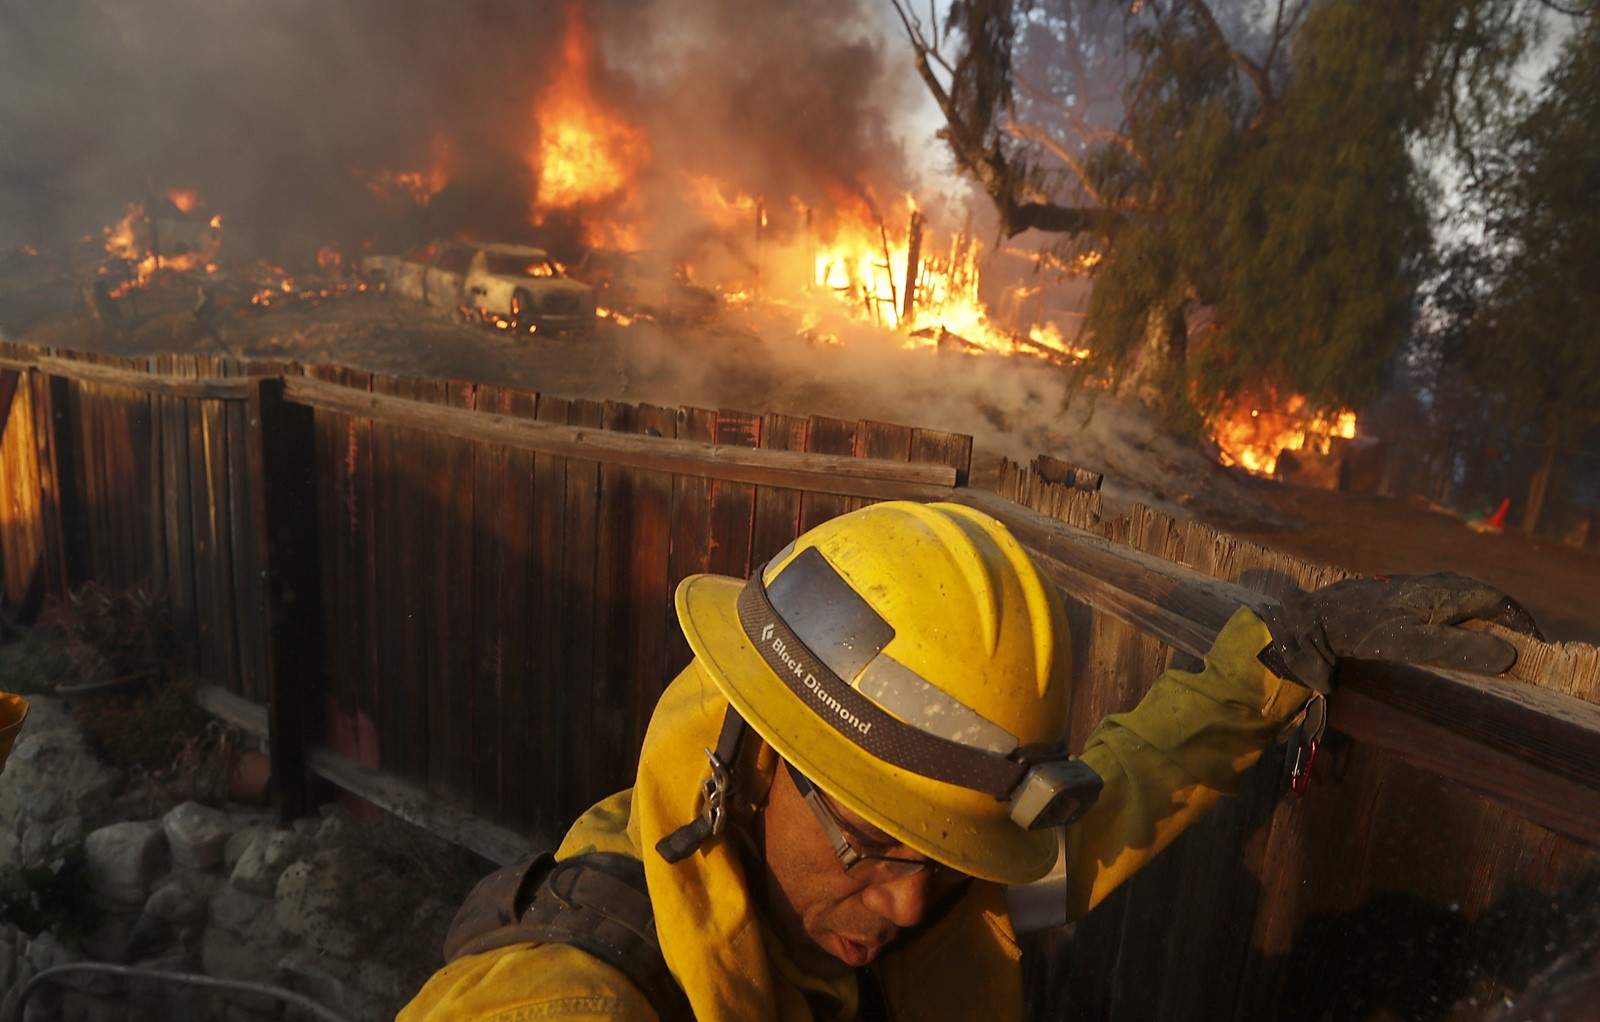 A firefighter monitors the Creek fire near Johanna Avenue and McBroom Street in Shadow Hills. The blaze scorched 11,000 acres and burned 30 homes. — Photograph: Luis Sinco/Los Angeles Times.